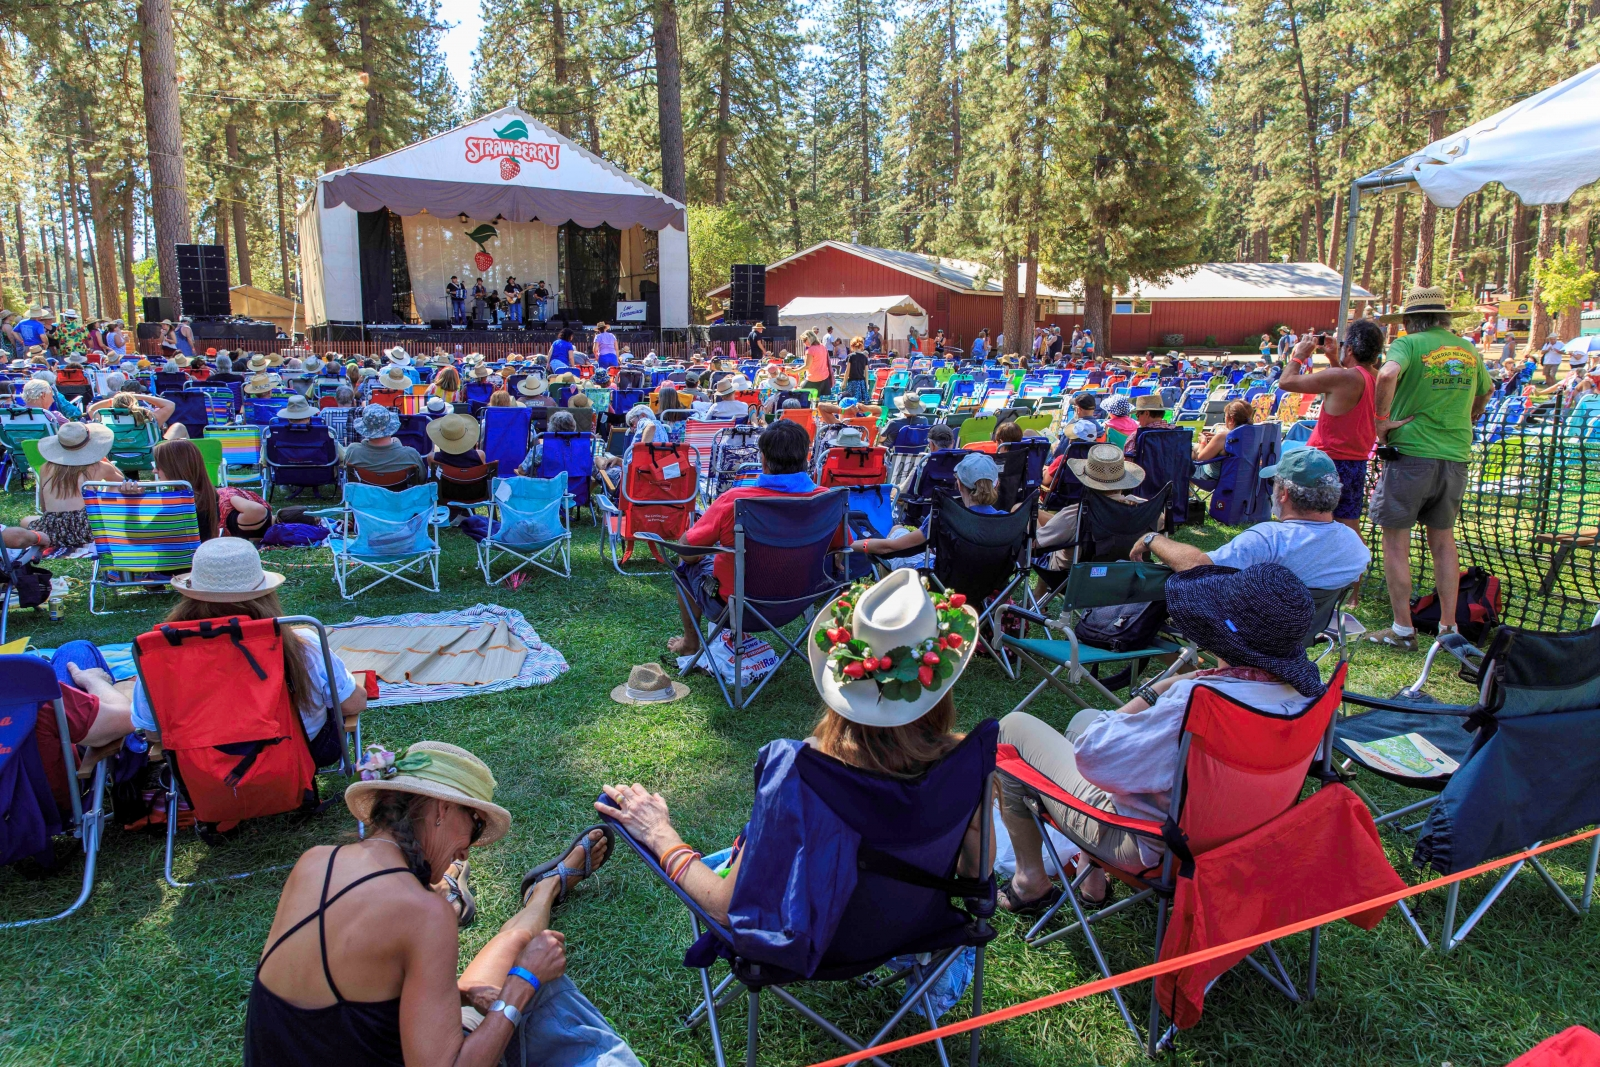 More than 20 musicians will perform at this twice-a-year music festival. (Photo courtesy of Spring Strawberry Music Festival)